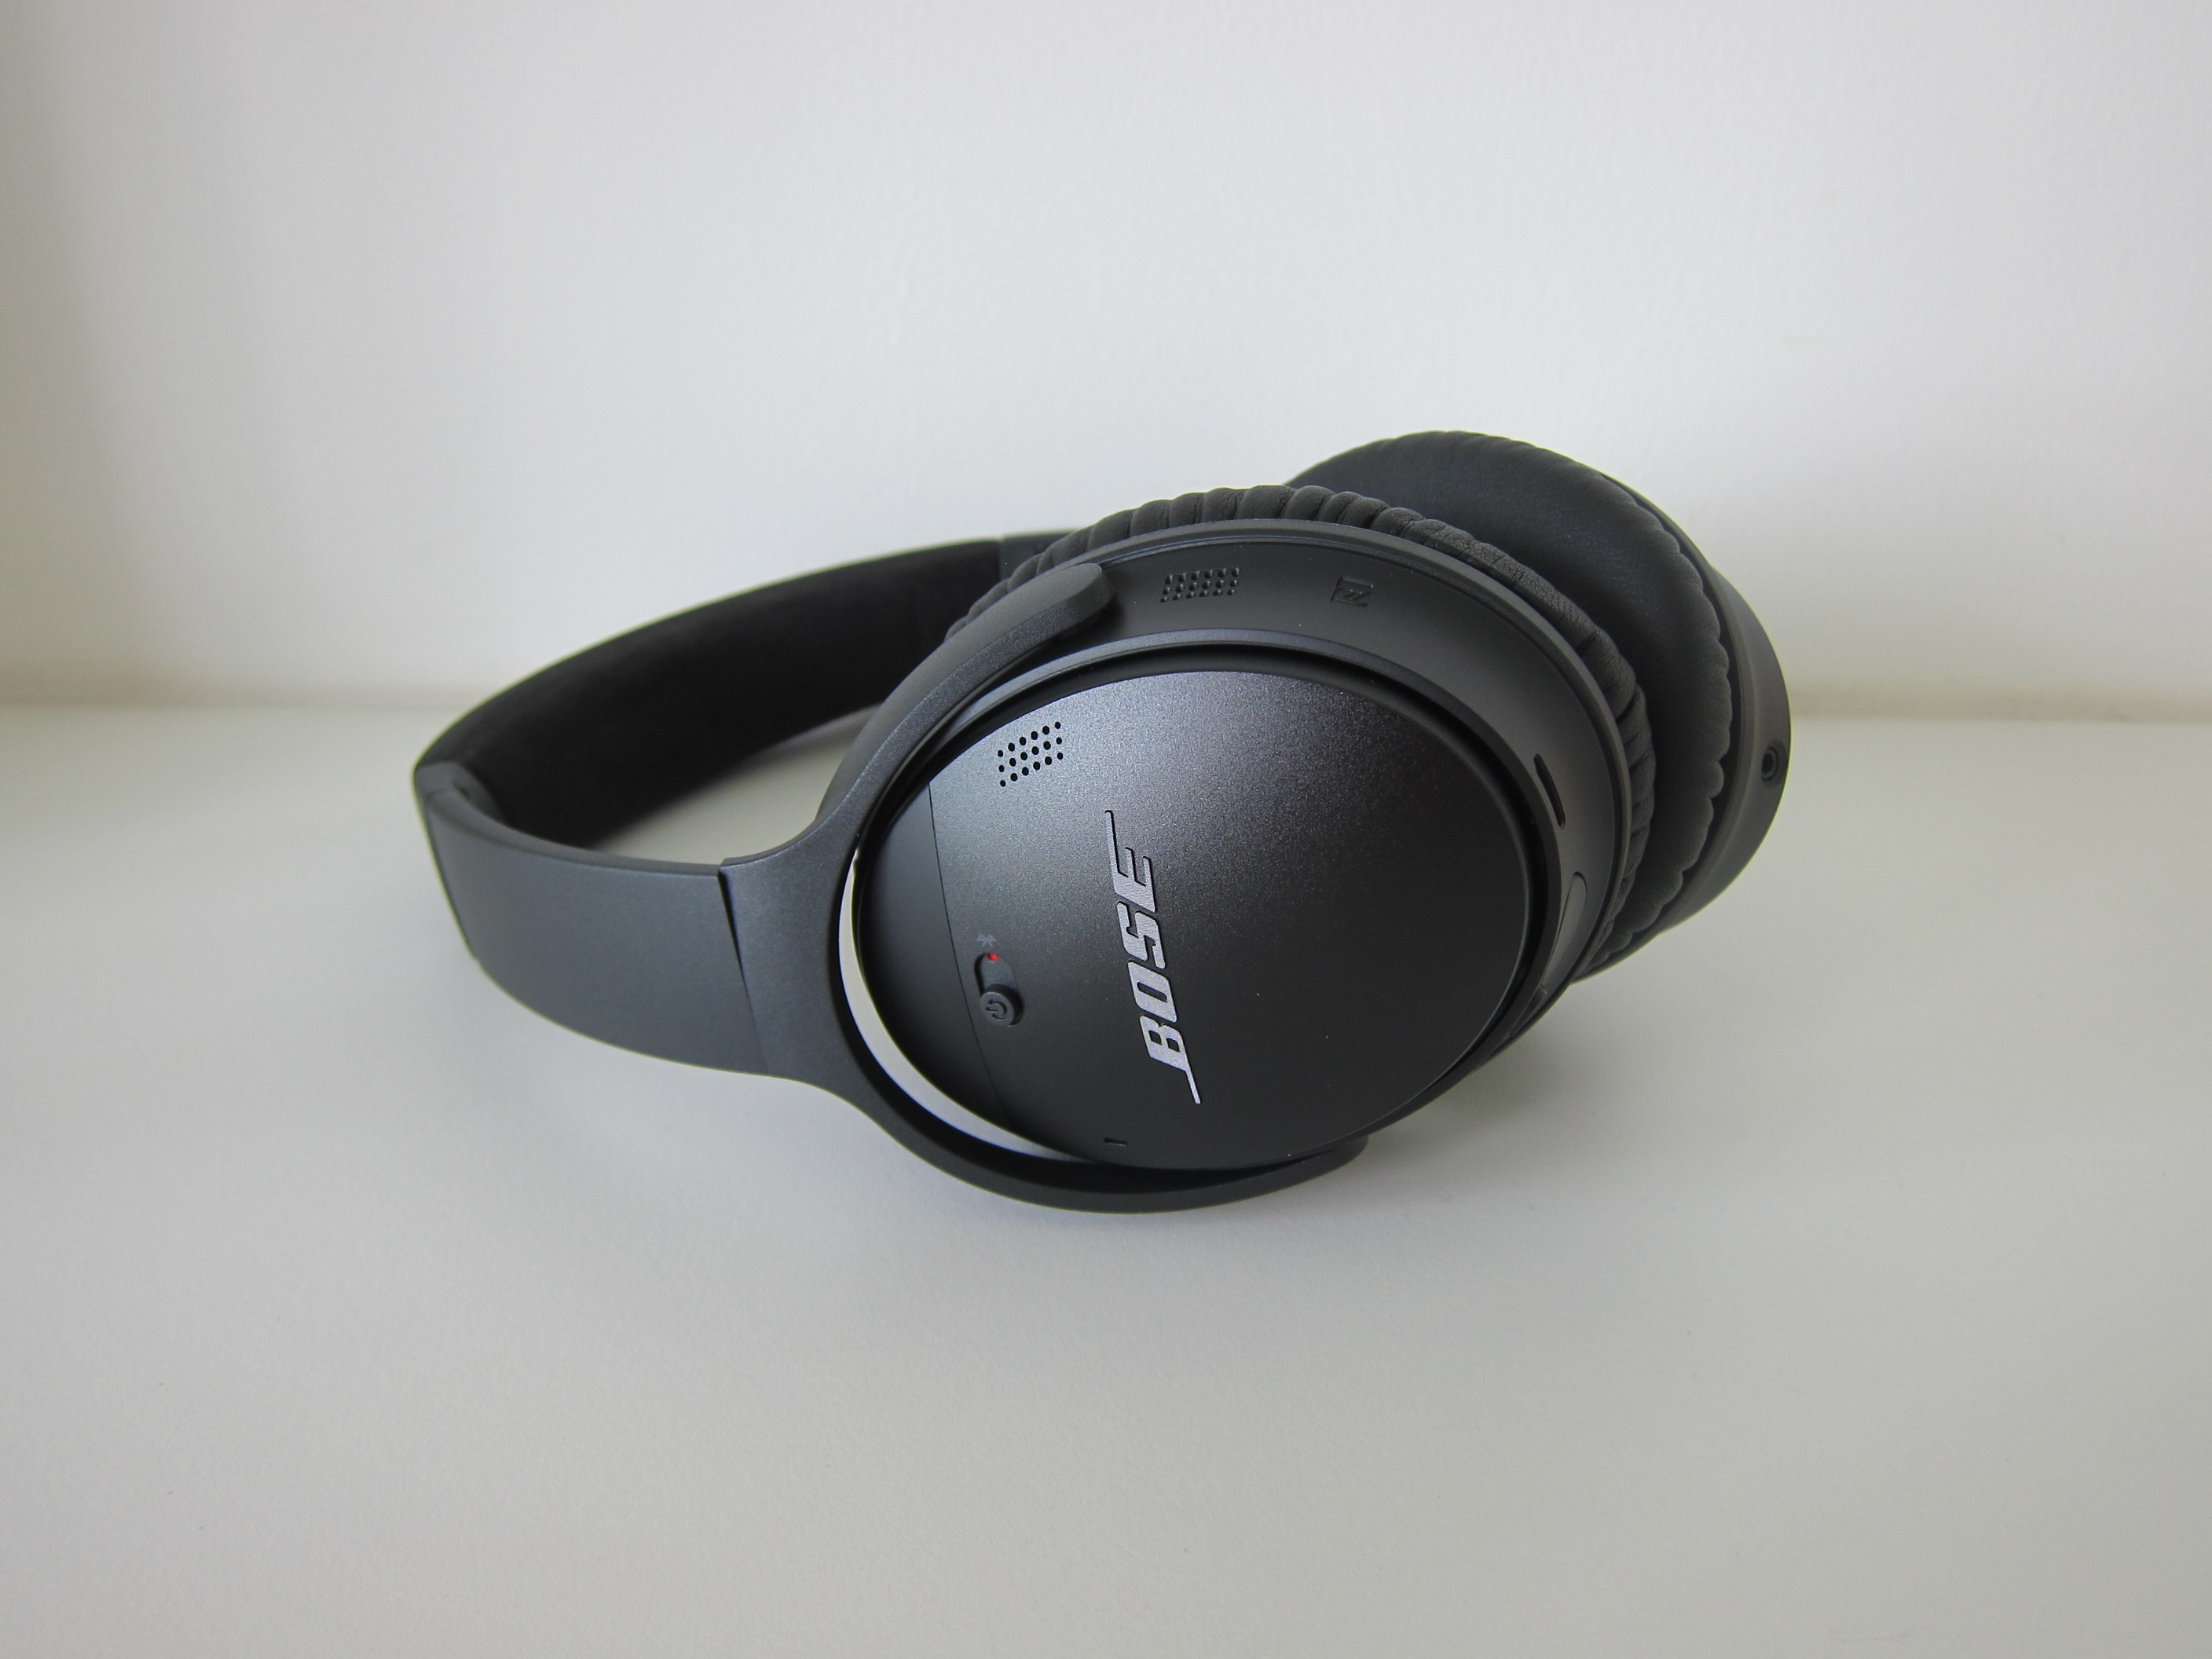 Bose Noise Cancelling Bose Noise Cancelling Headphones Qc25 Coupons Memorial Day